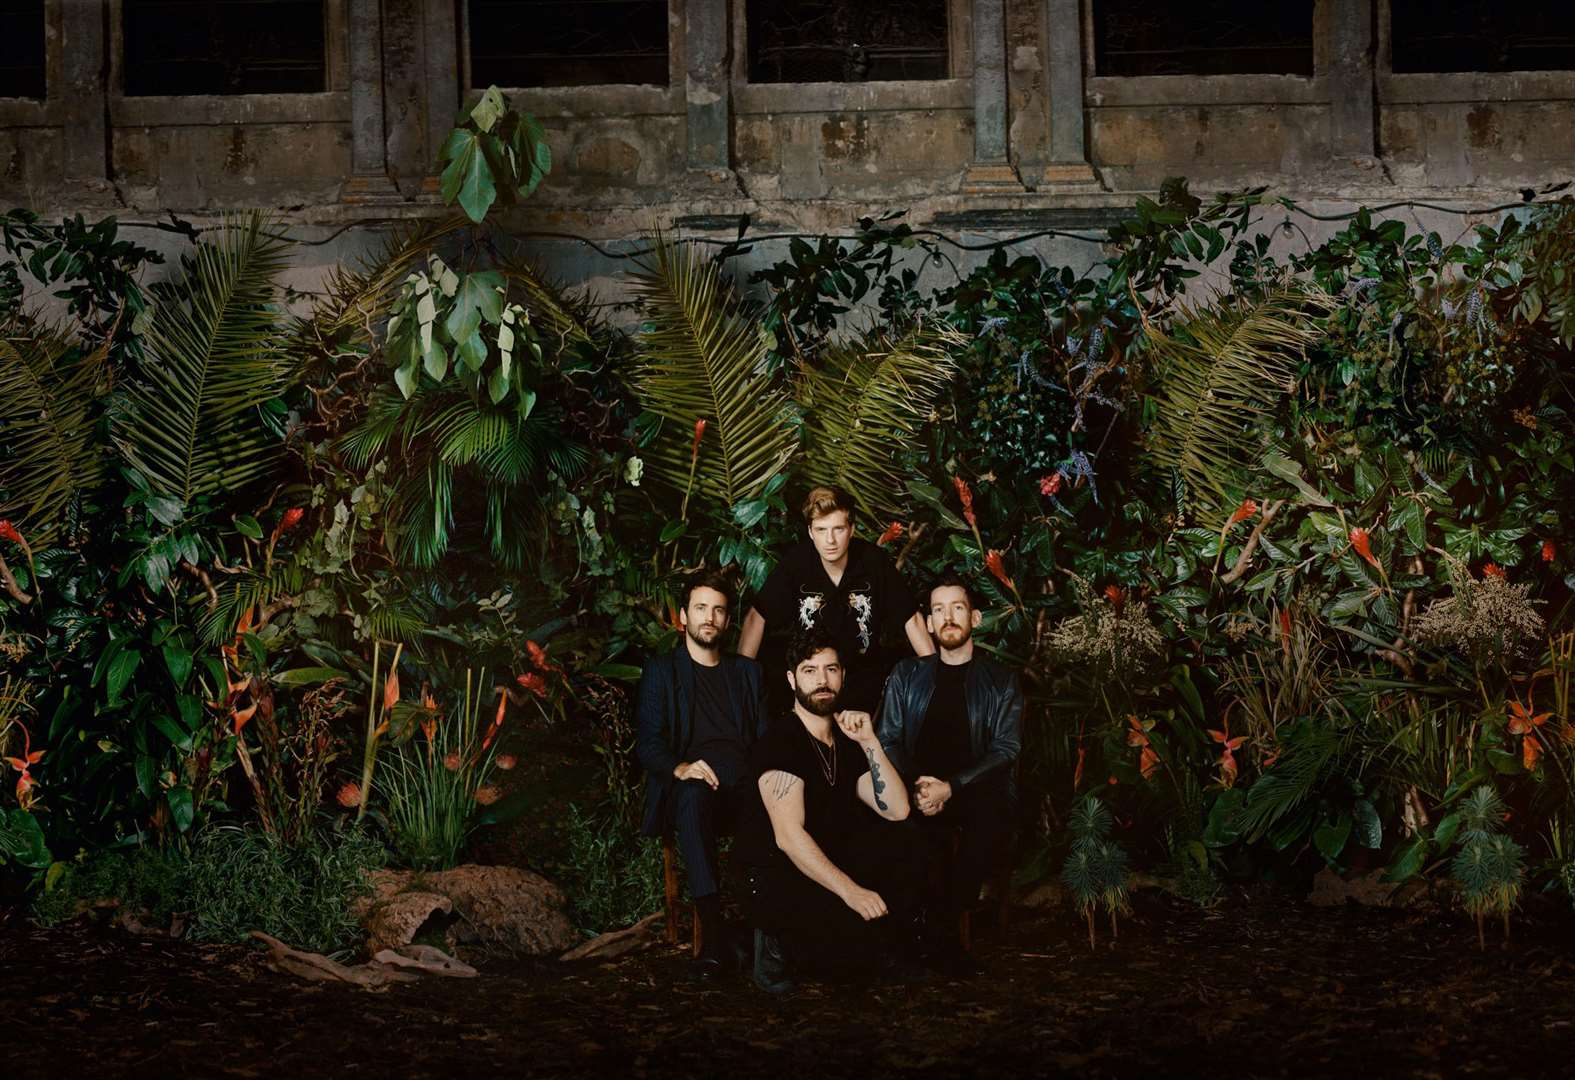 Foals to play Thetford Forest gig in summer